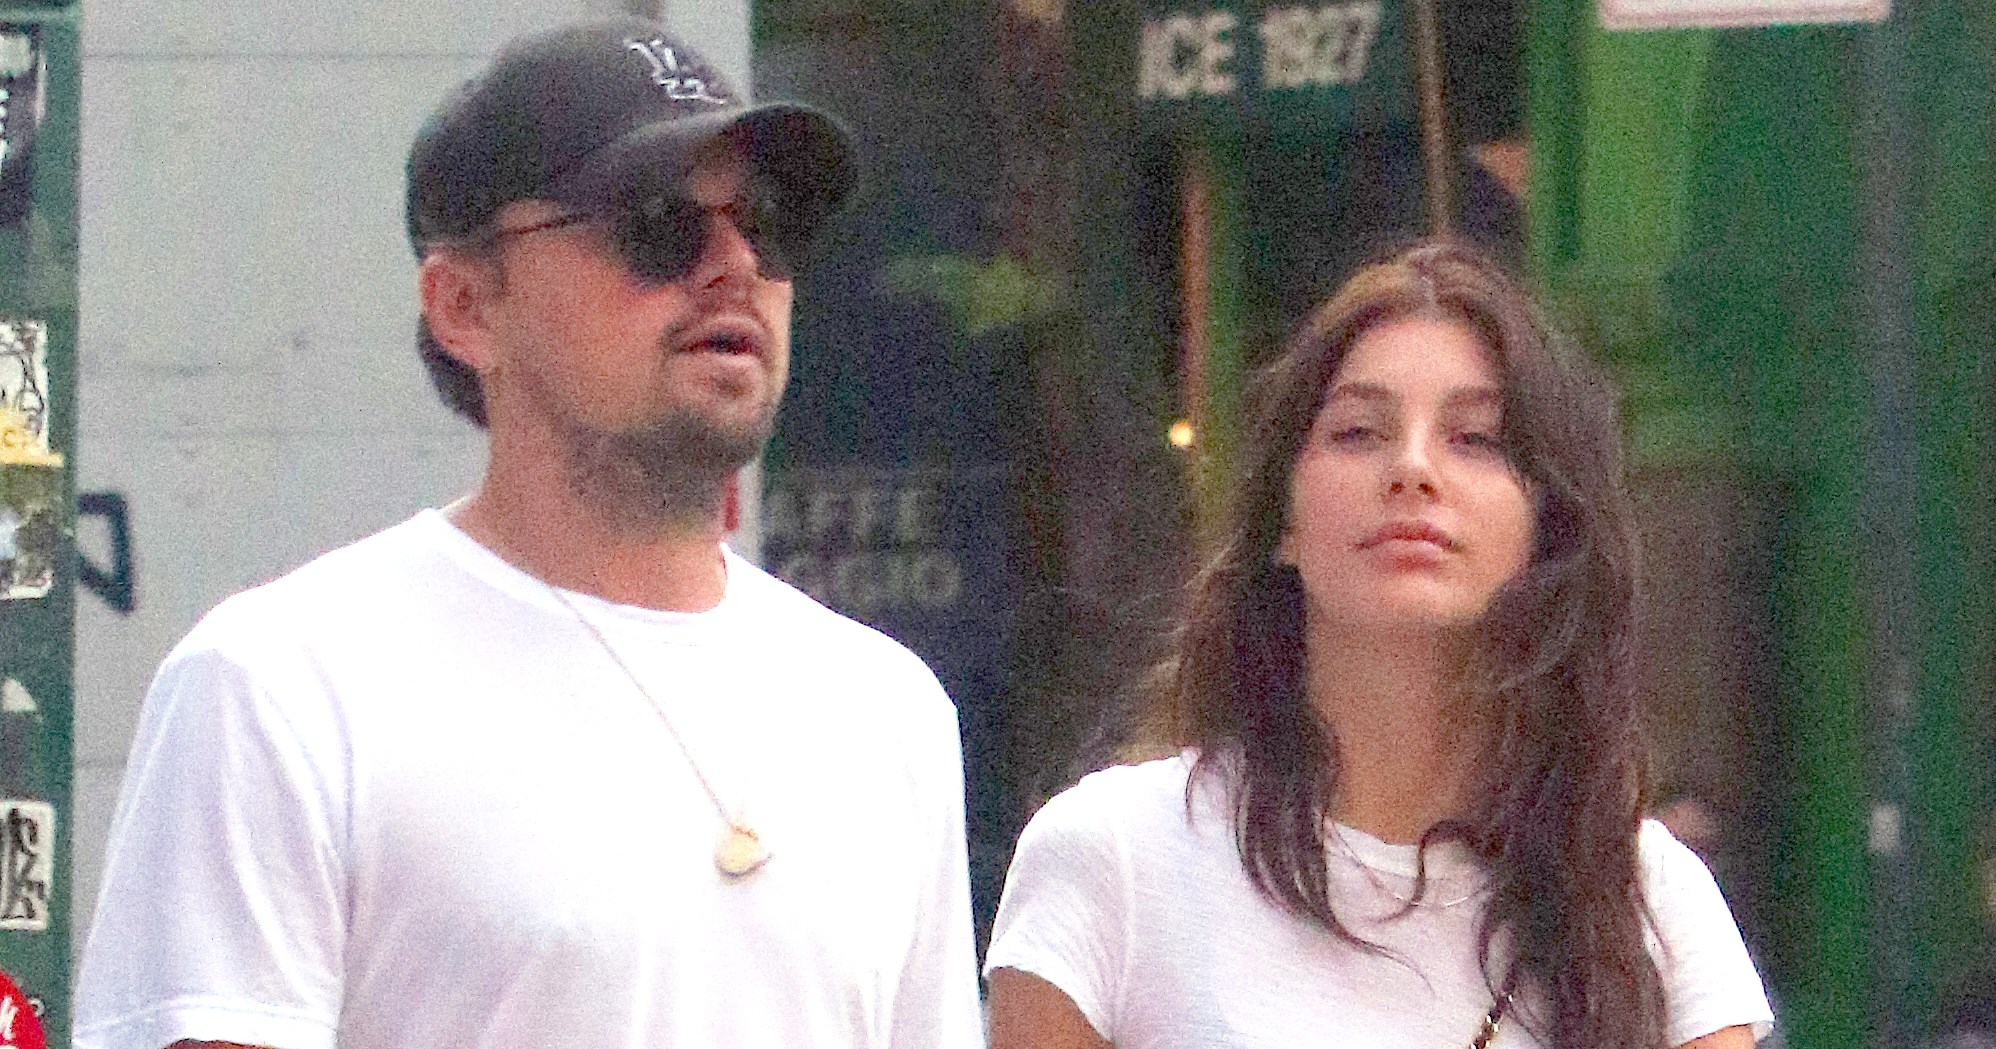 Leonardo DiCaprio and Camila Morrone Have 'Talked About Getting Engaged'